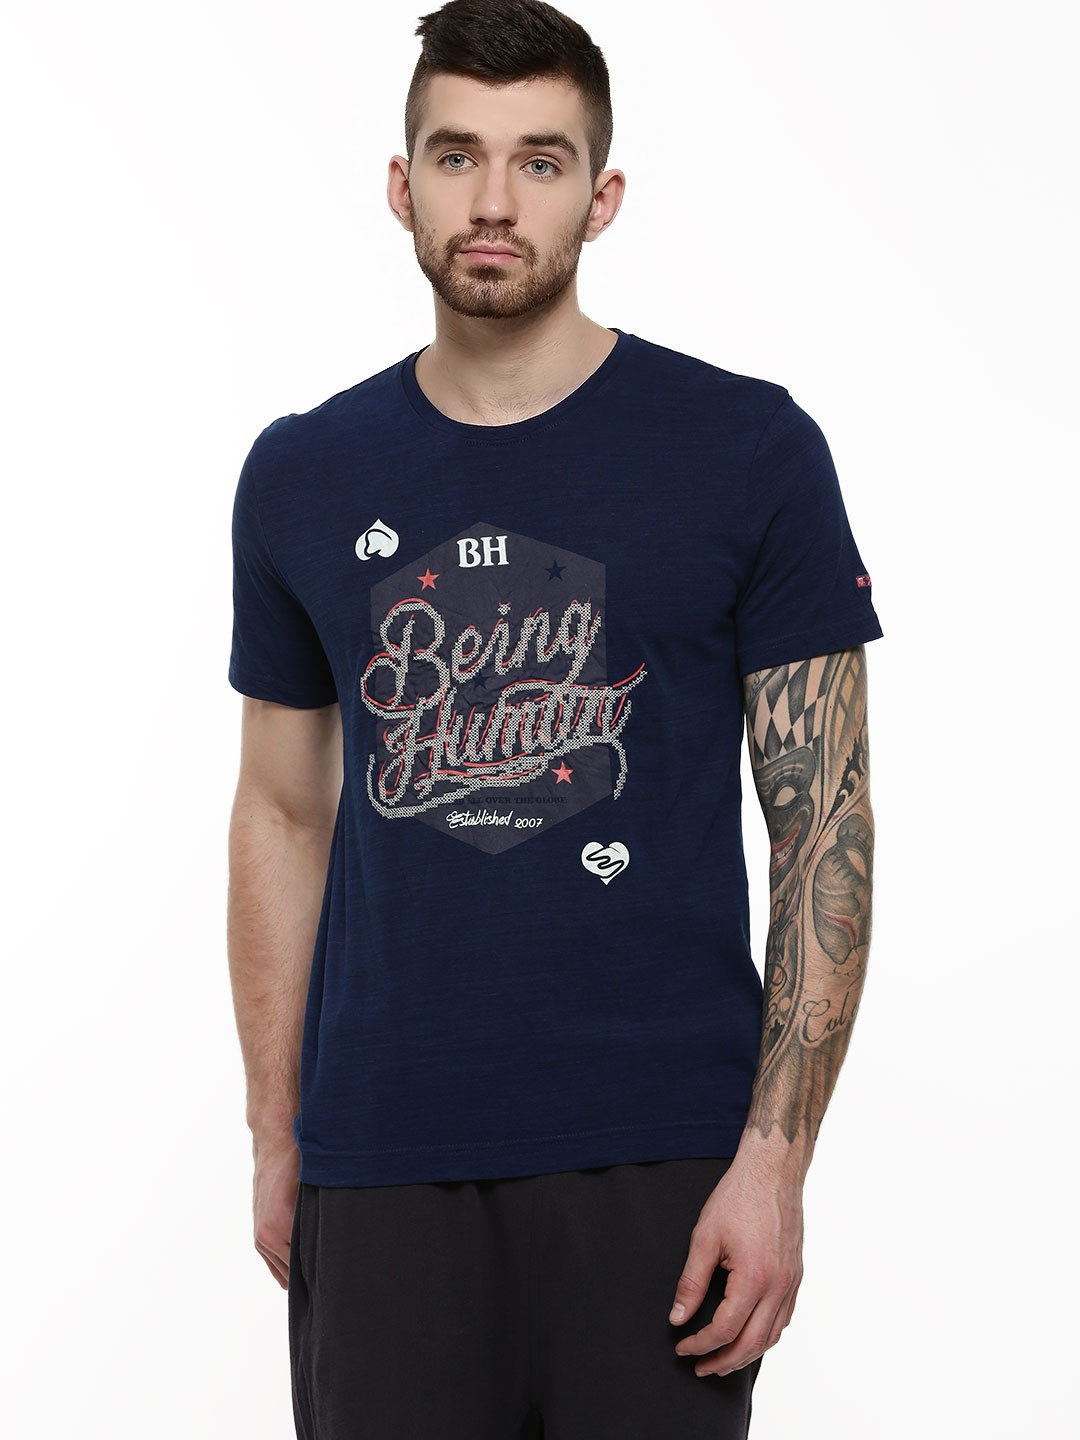 Buy being human graphic print crew neck t shirt for men for Being human t shirts buy online india